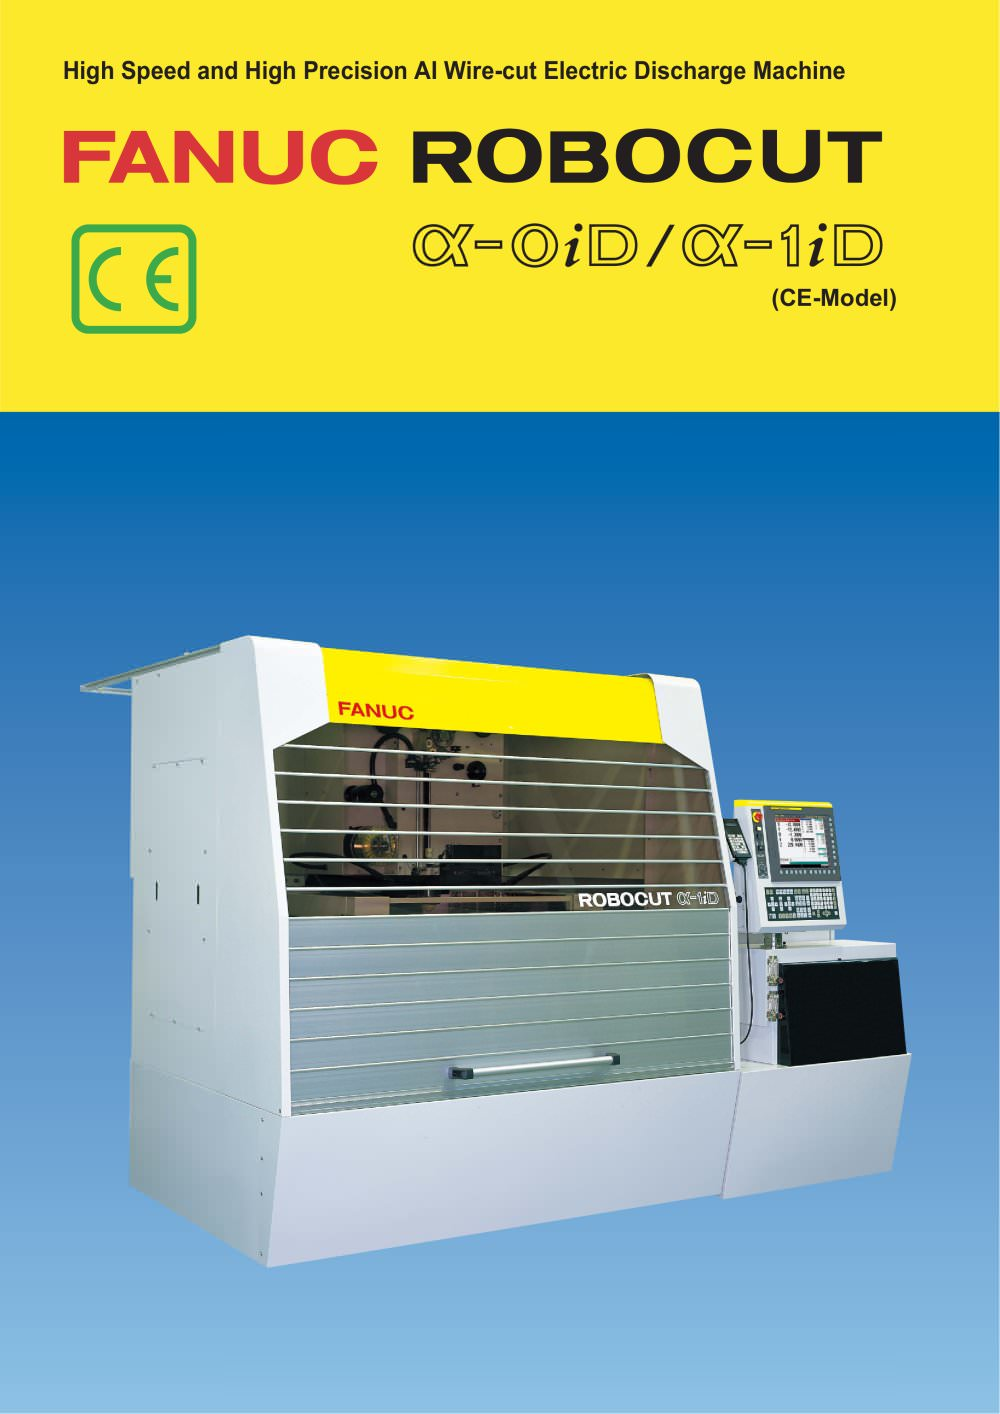 Robocut fanuc robocut a-id series - 600 group - pdf catalogue | technical